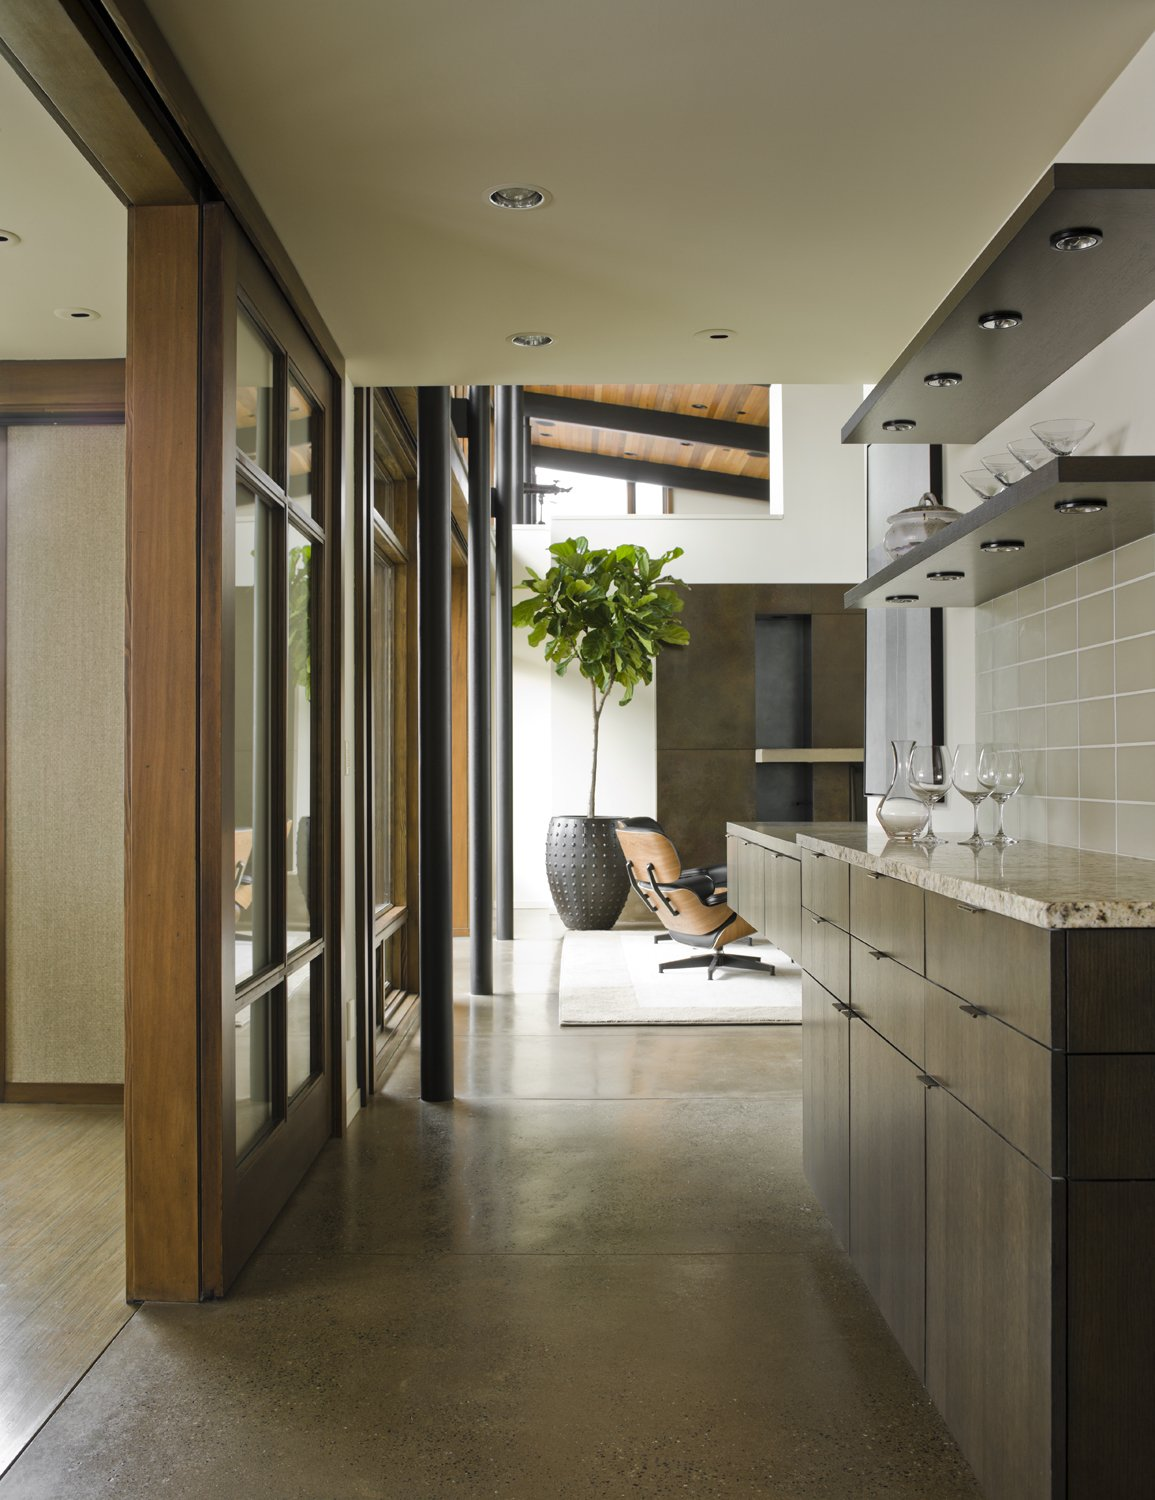 Hallway and Concrete Floor Mountain View Residence  Mountain View Residence by SkB Architects